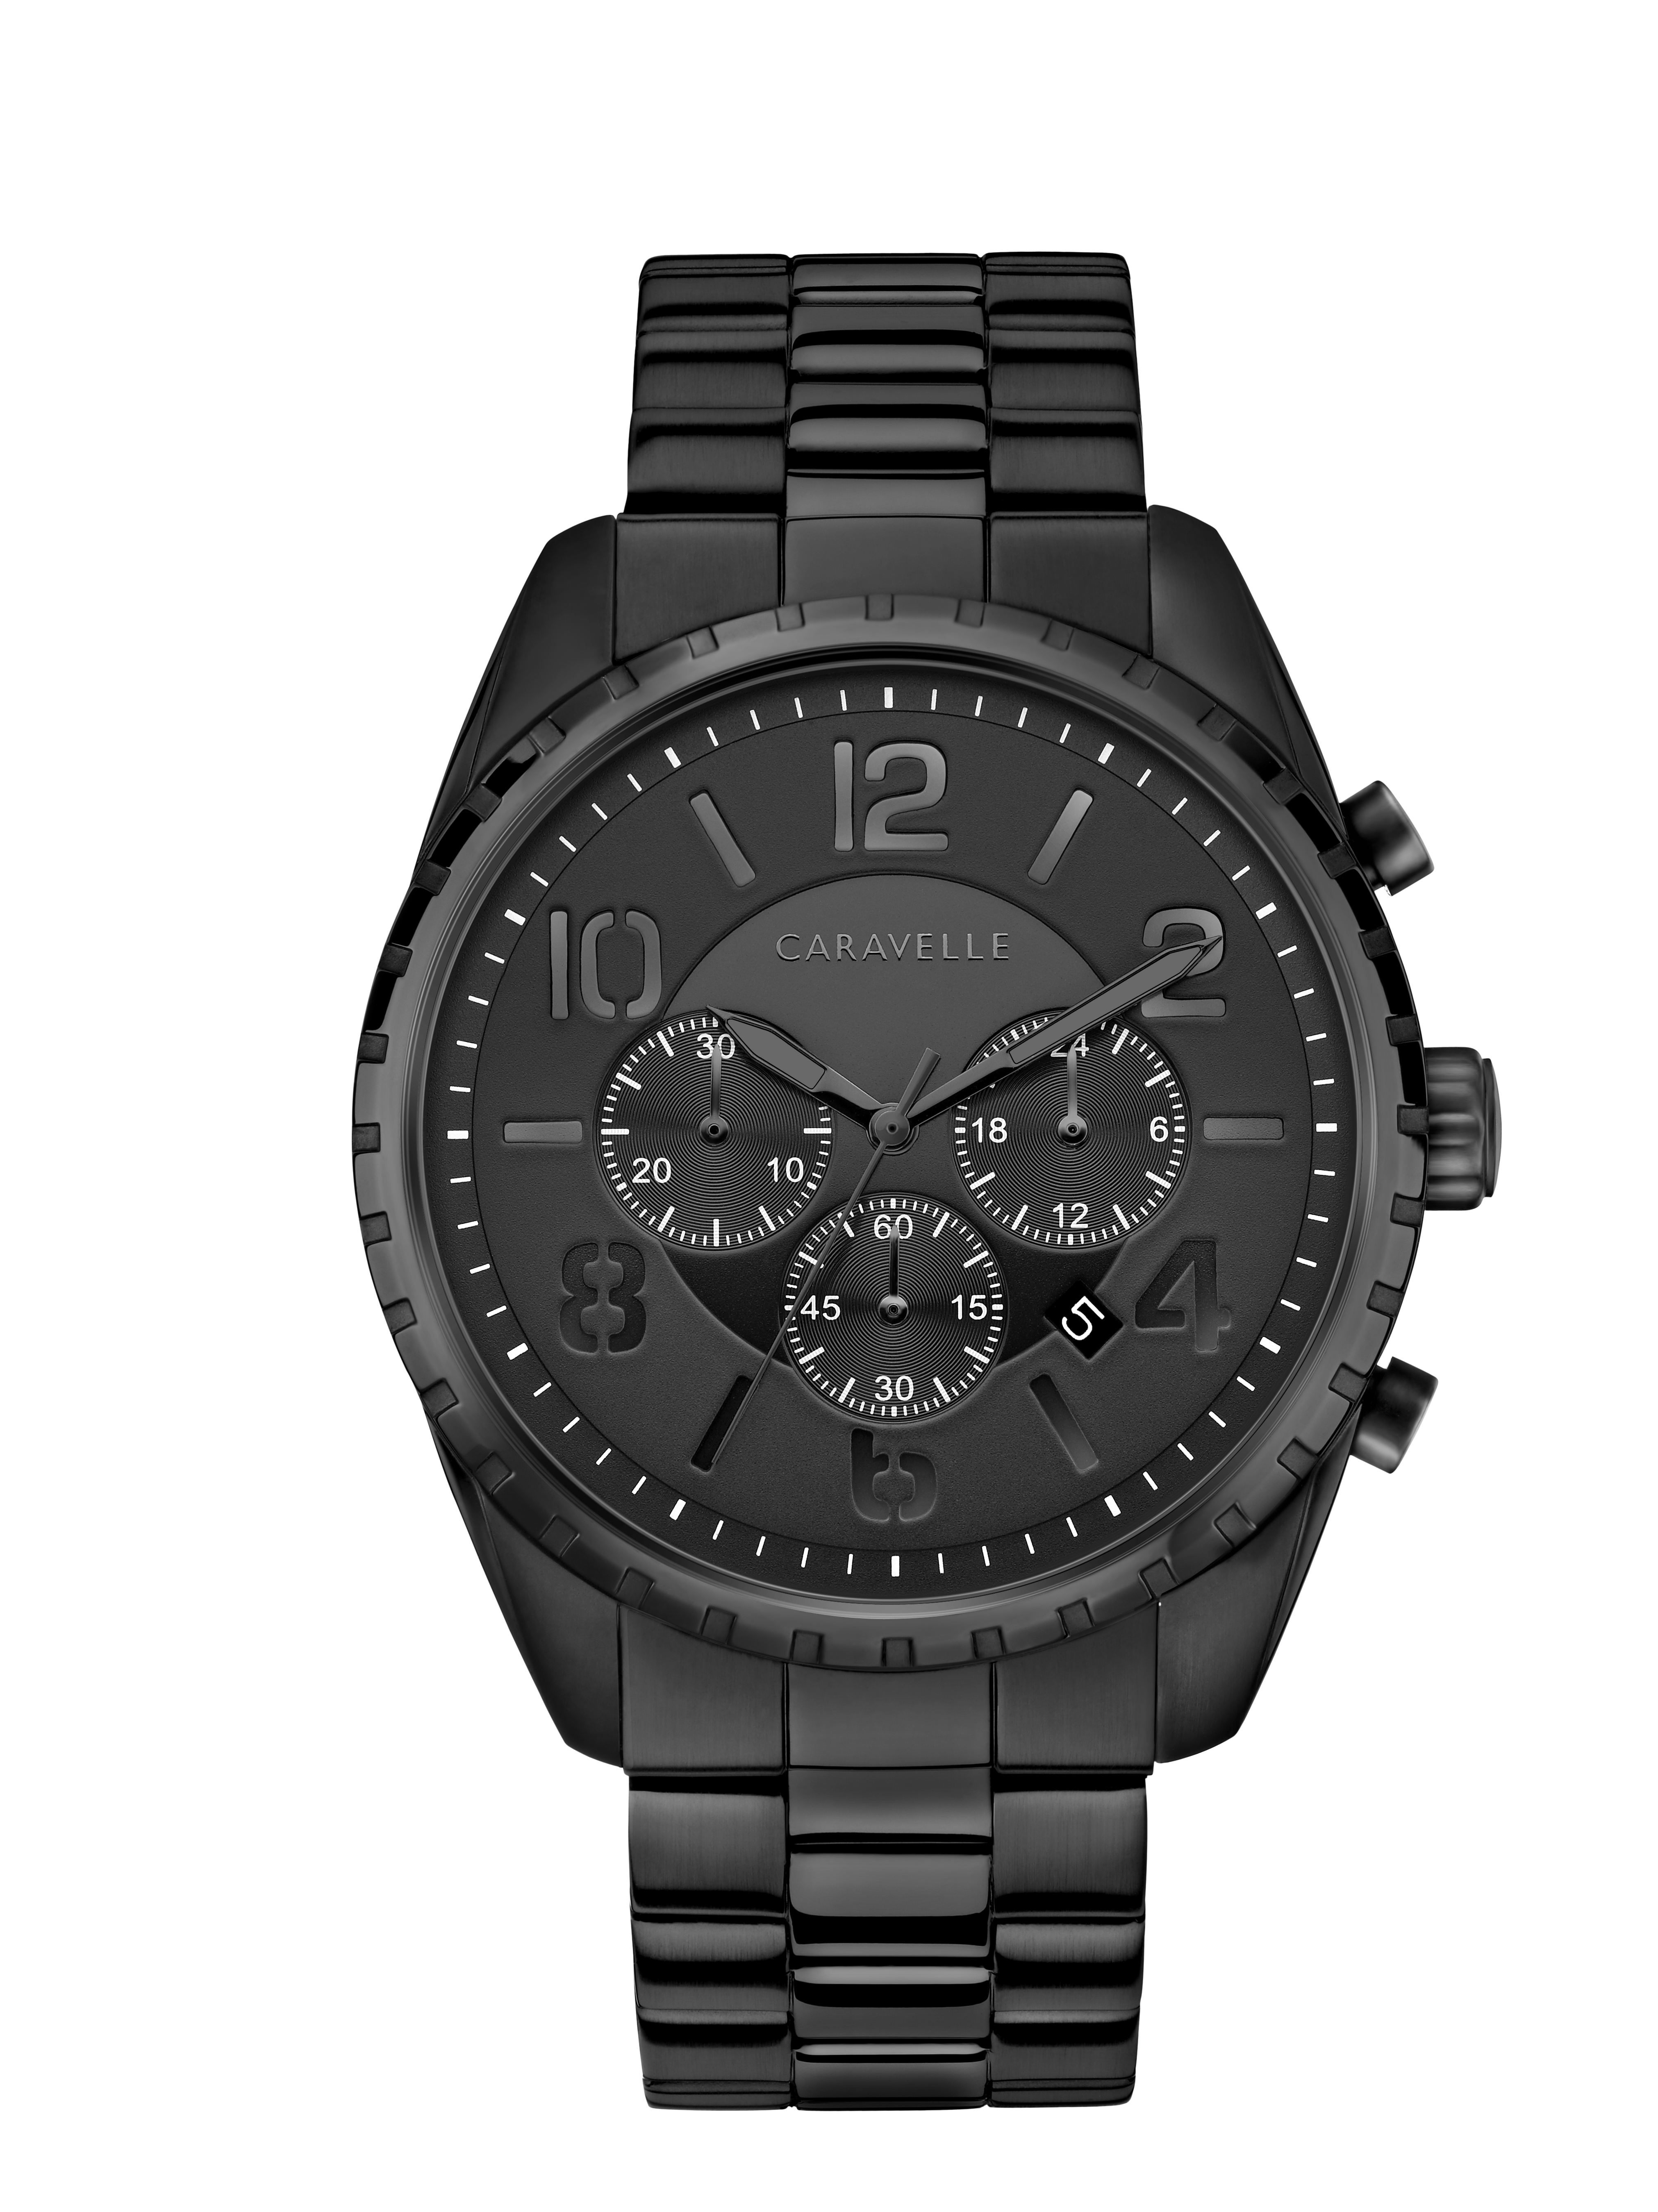 NY Watch for Man - Black ion plated stainless steel & Multi-layer black dial